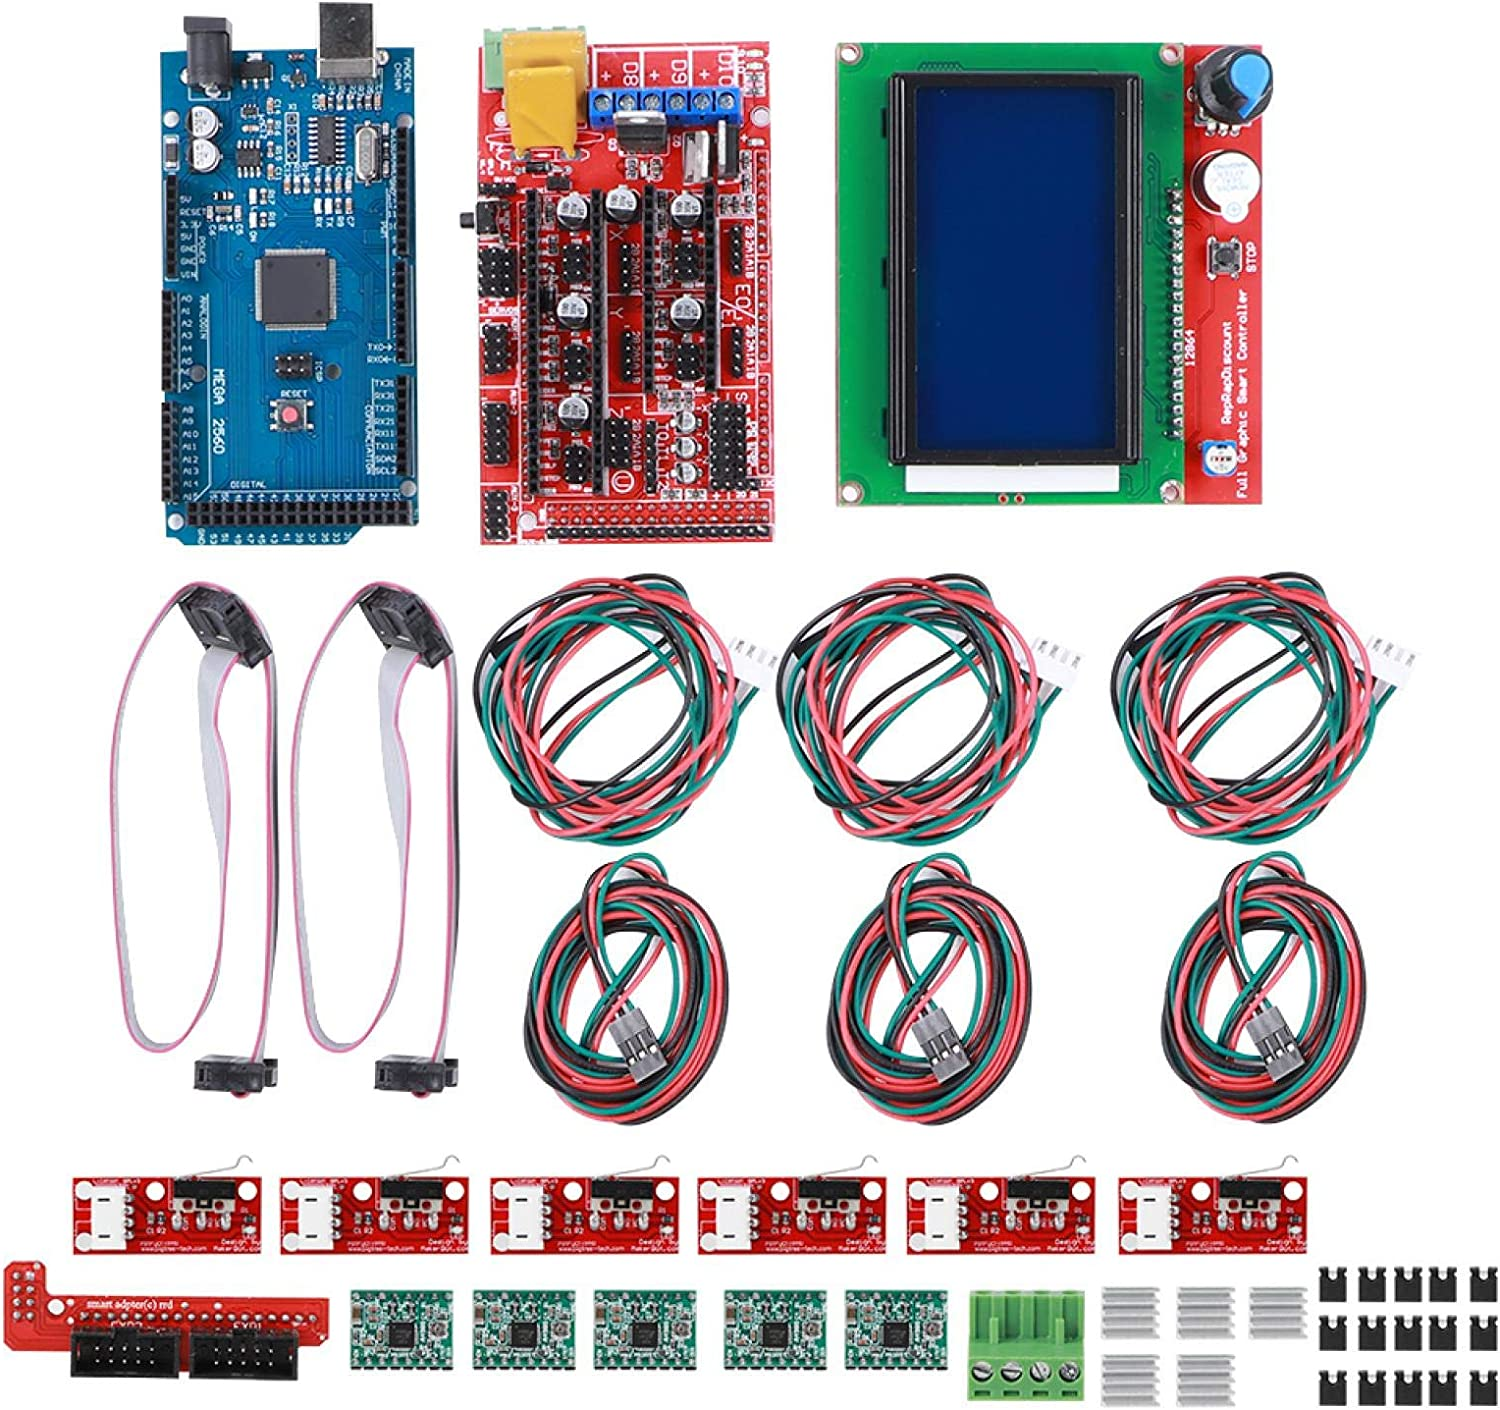 RAMPS 1.4 Board Consumer Ranking TOP4 Electronics Kit Reliable Printer We OFFer at cheap prices PCB 3D